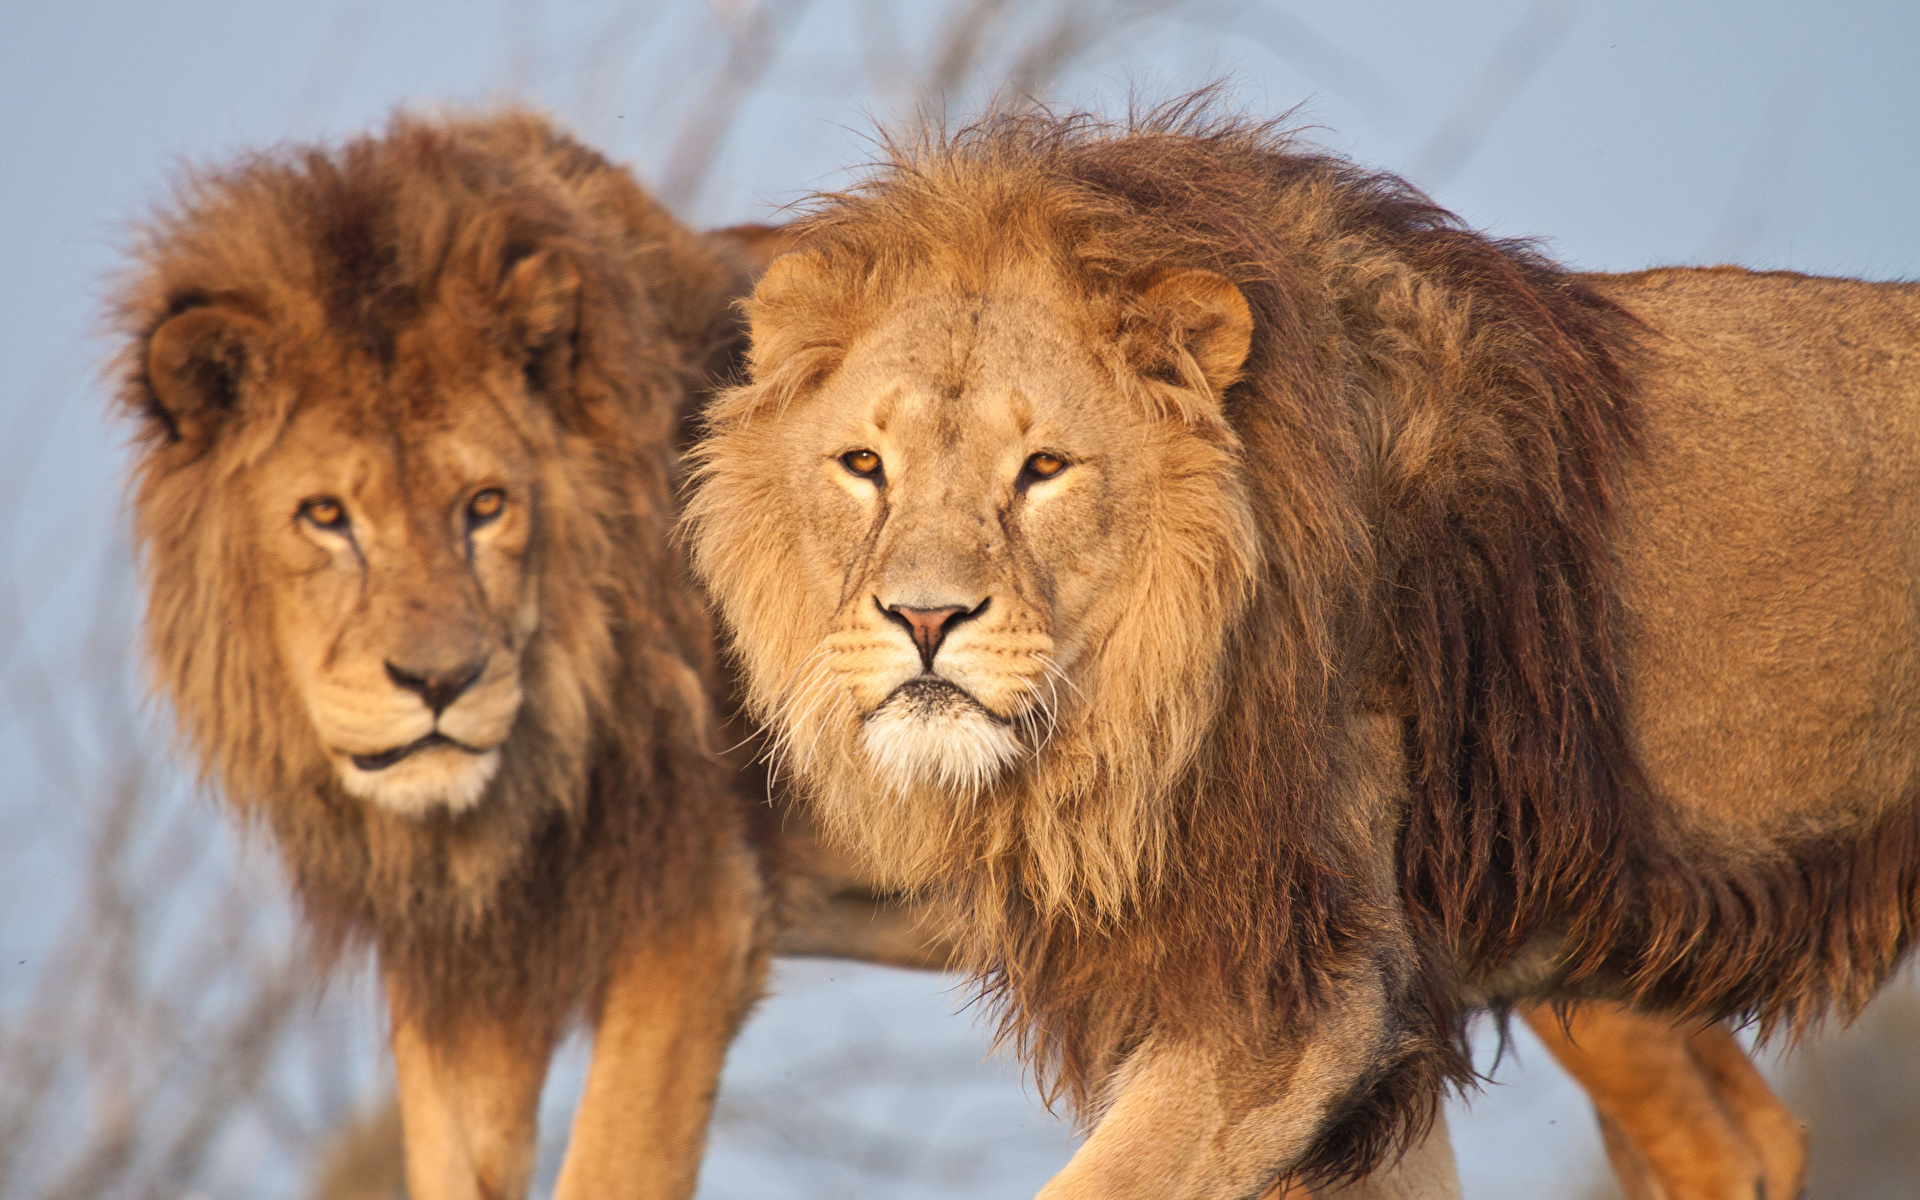 Desktop Wallpapers Lions Big cats 2 animal 1920x1200 lion Two Animals